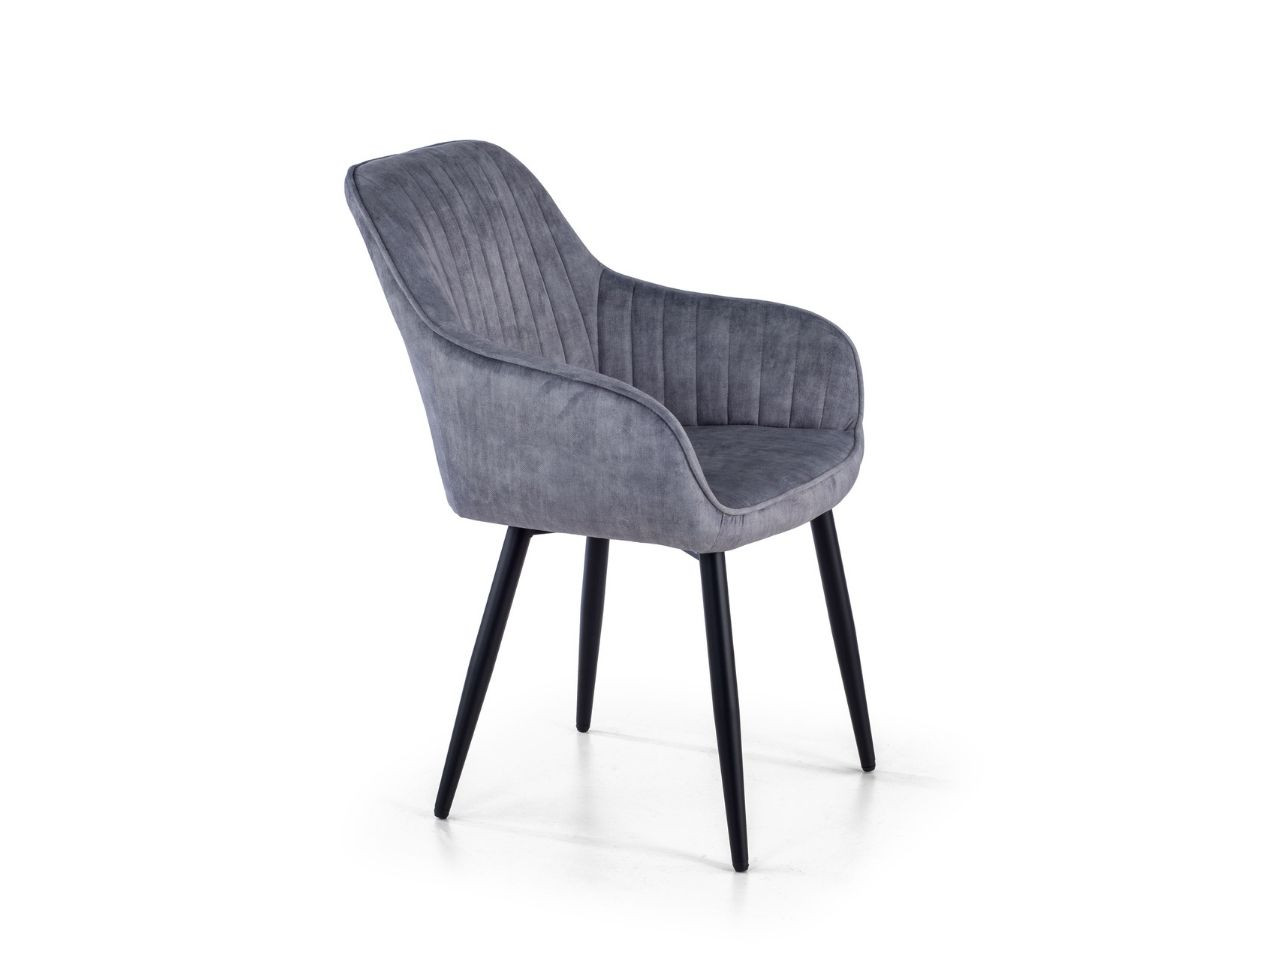 Sofa Cama Barato En Madrid Ikea Sofas Cama De Dos Plazas Finest Great Sofa Cama Ikea And